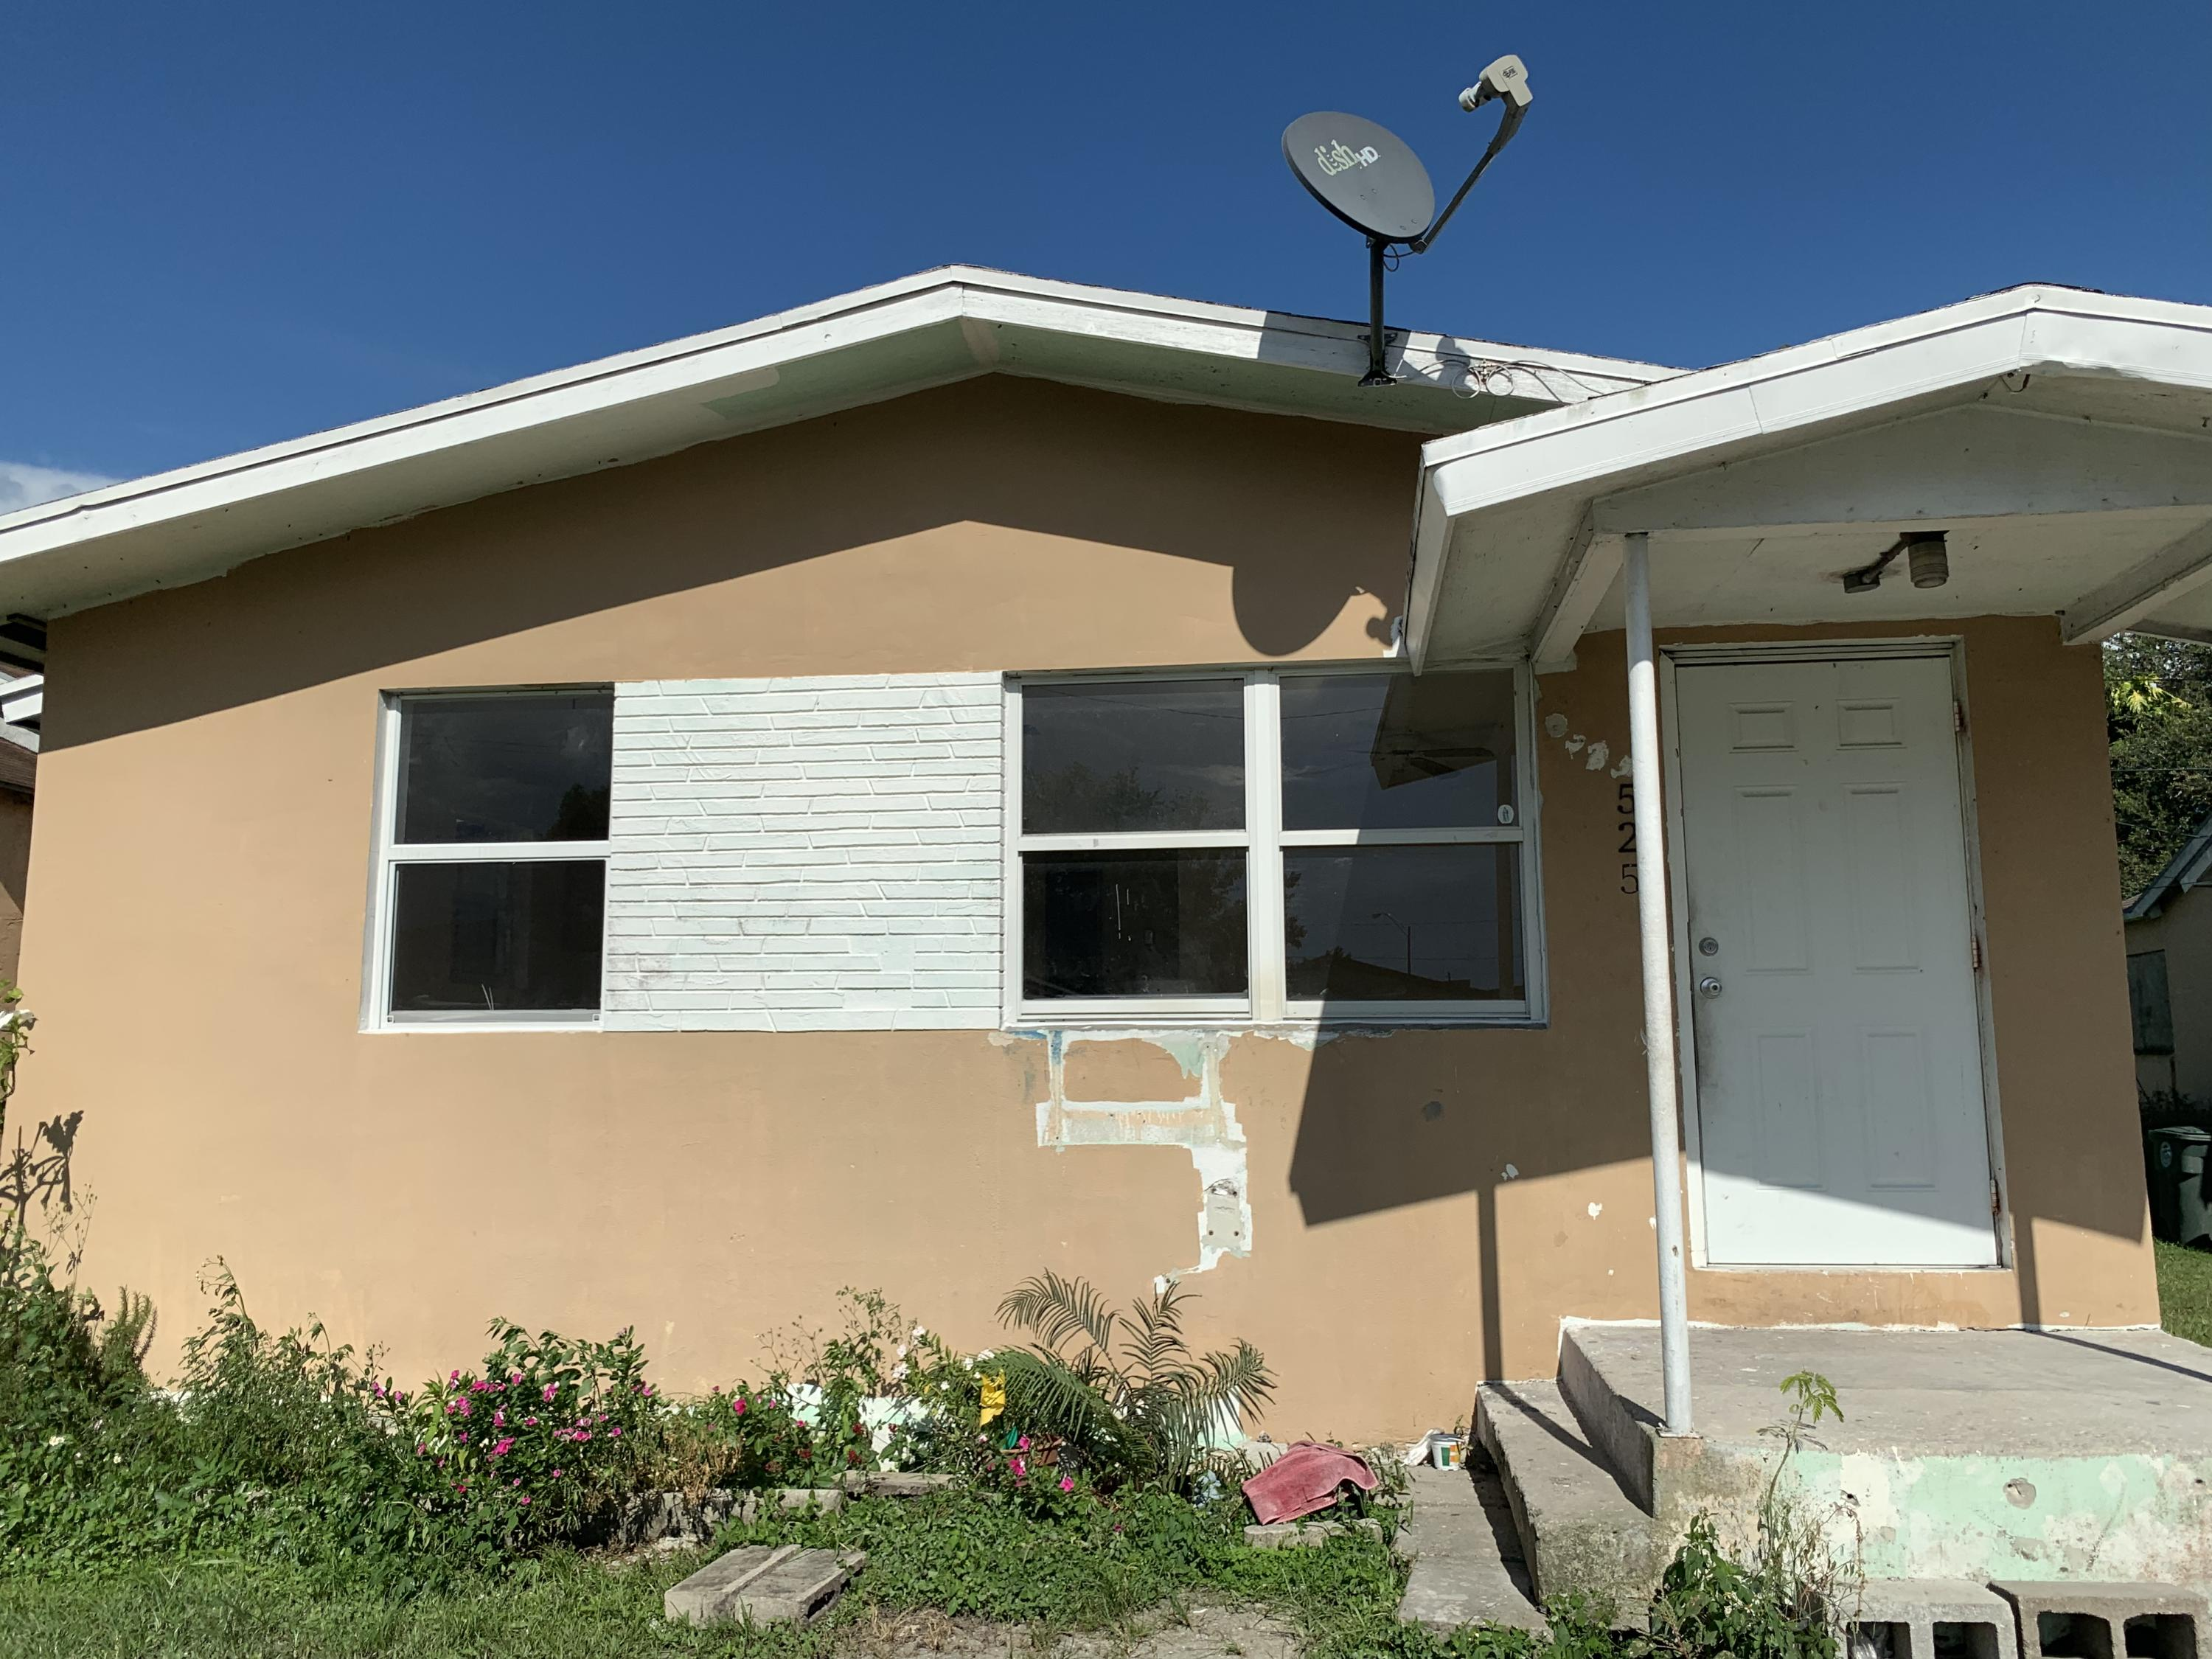 525 1st Street, Belle Glade, Florida 33430, 2 Bedrooms Bedrooms, ,1 BathroomBathrooms,Single Family,For Rent,NONE,1st,1,RX-10558329